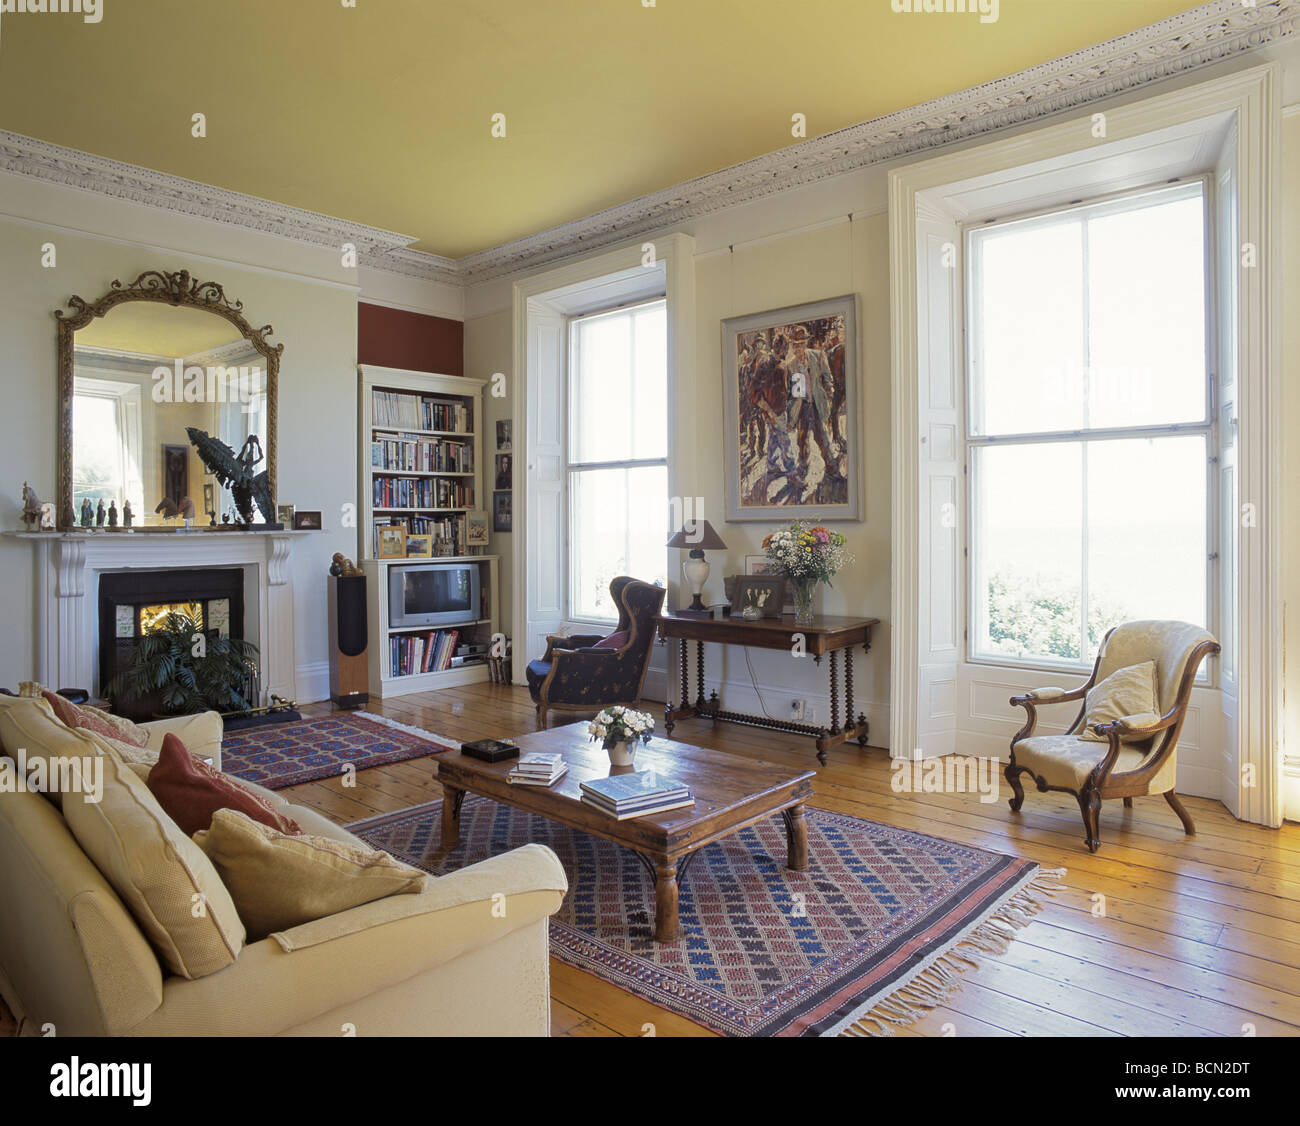 Victorian Sitting Rooms: Victorian Sitting Area Stock Photos & Victorian Sitting